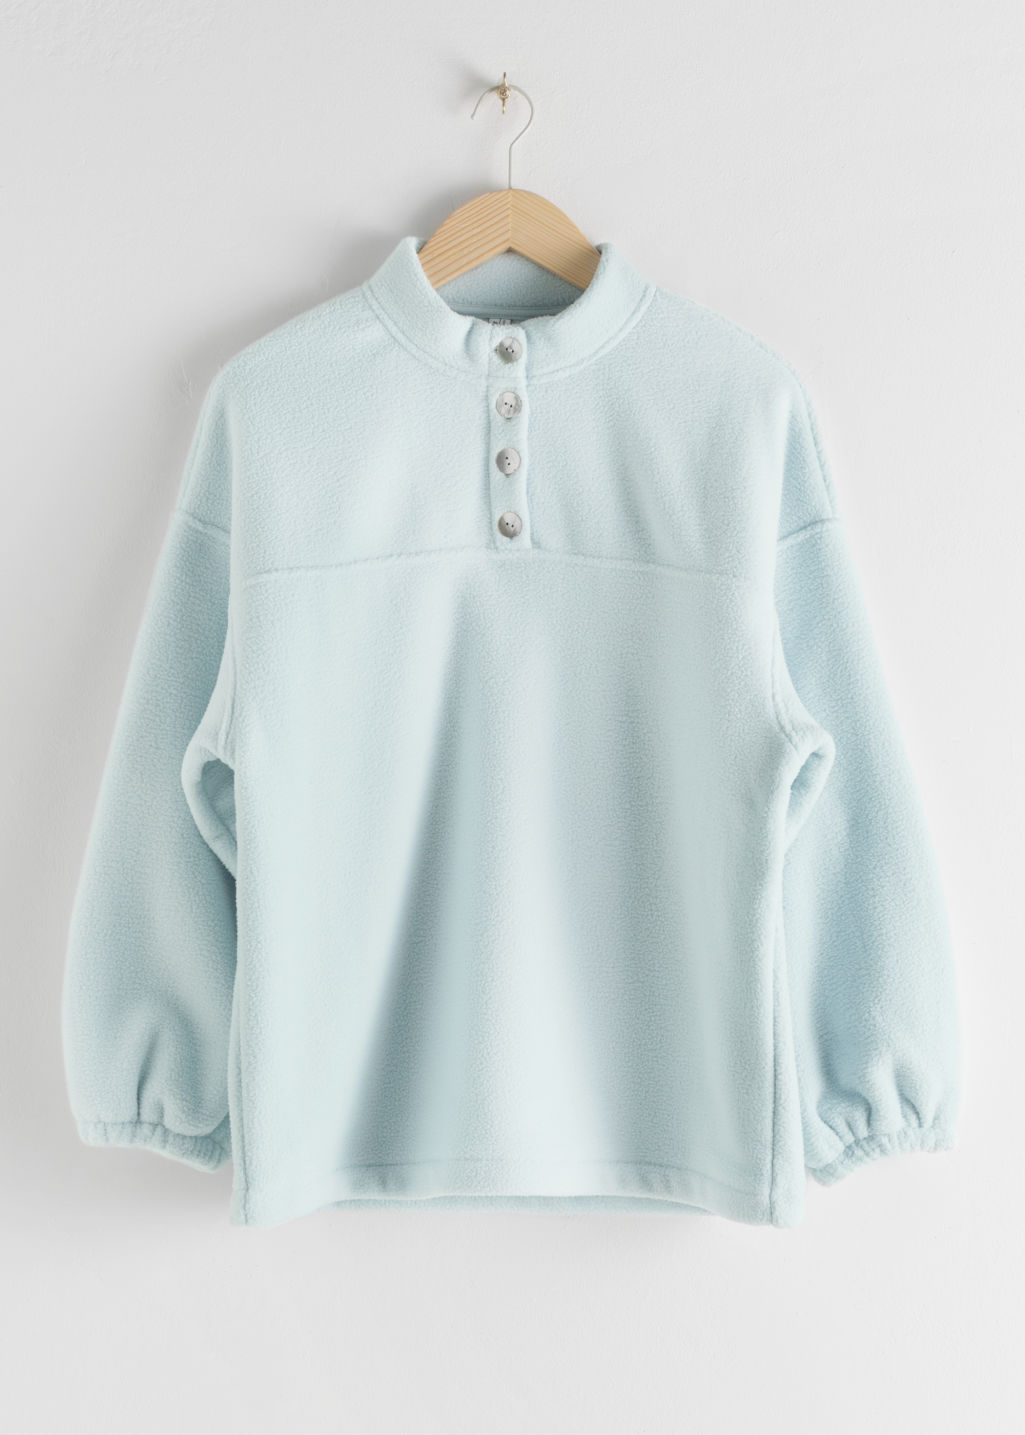 wholesale dealer 7ce0f 7eaaa Fleece Mock Neck Pullover - Blue - Sweaters - & Other Stories